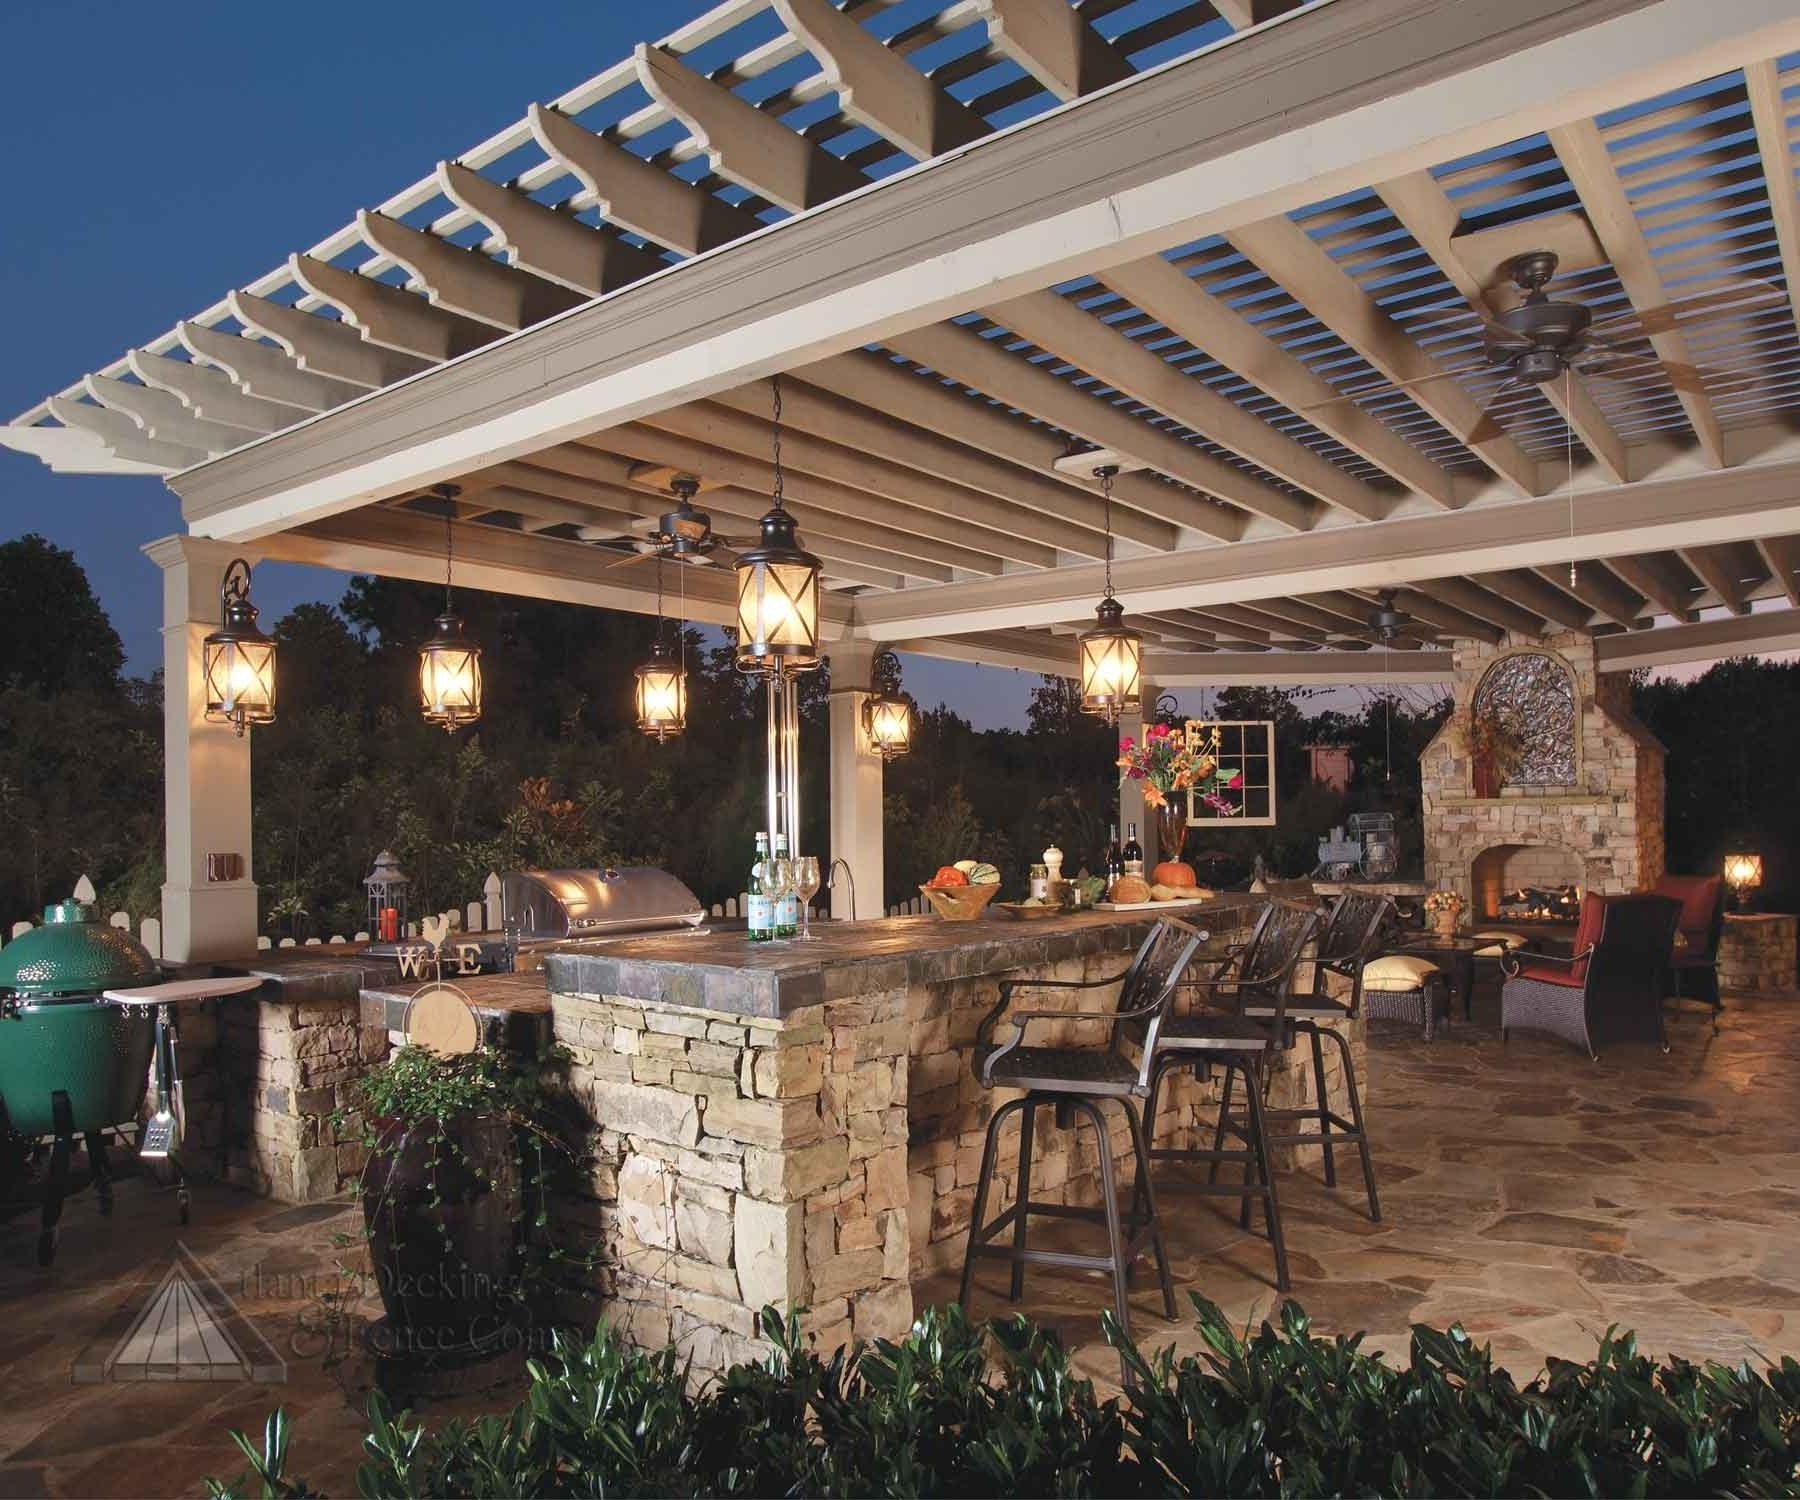 2018 Outdoor Hanging Lighting Fixtures Intended For Gorgeous Outdoor Kitchen Lighting Fixtures On House Design Ideas (View 6 of 20)